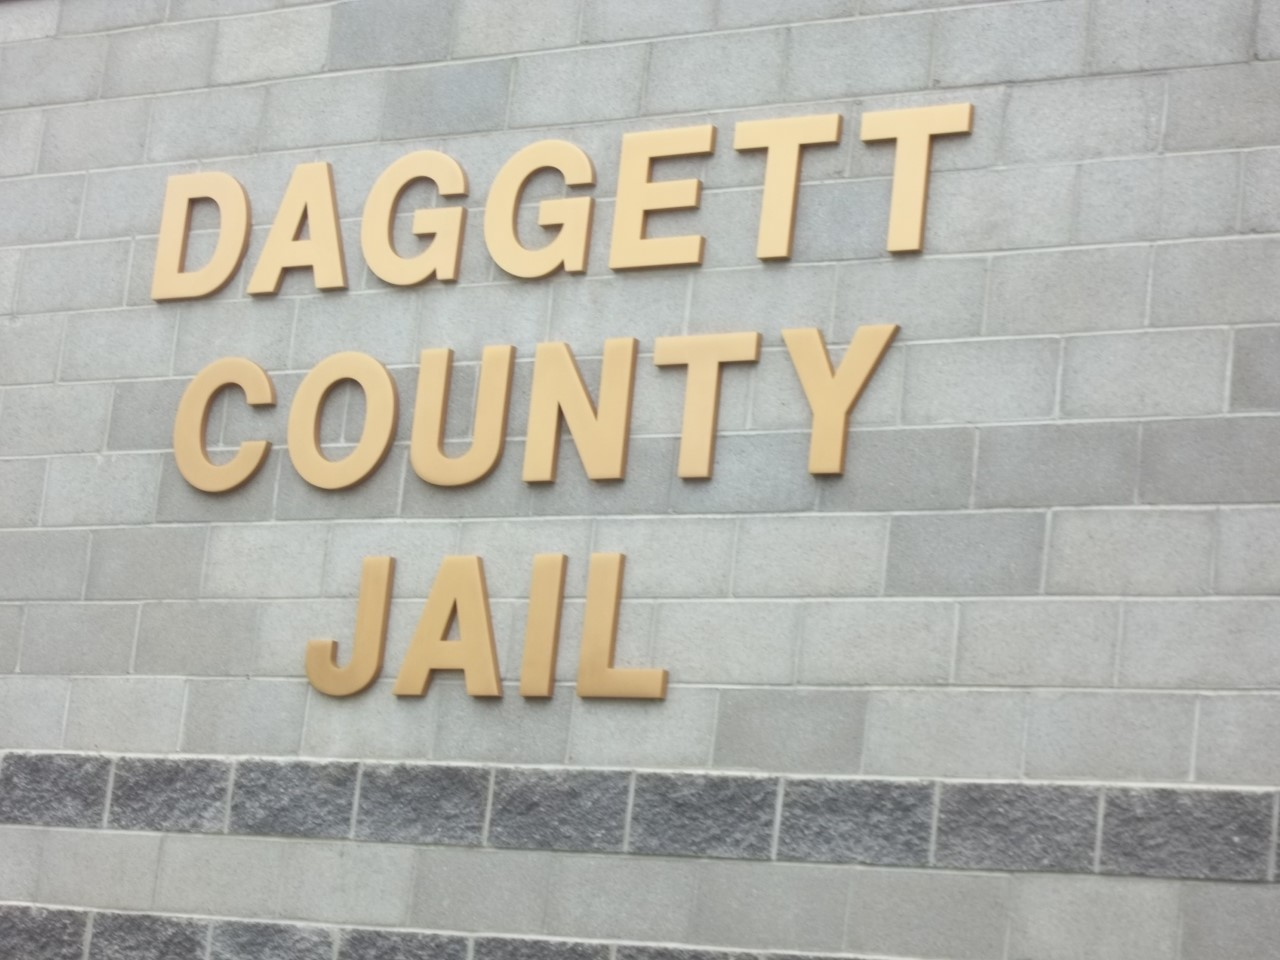 daggett_county_jail_.jpg